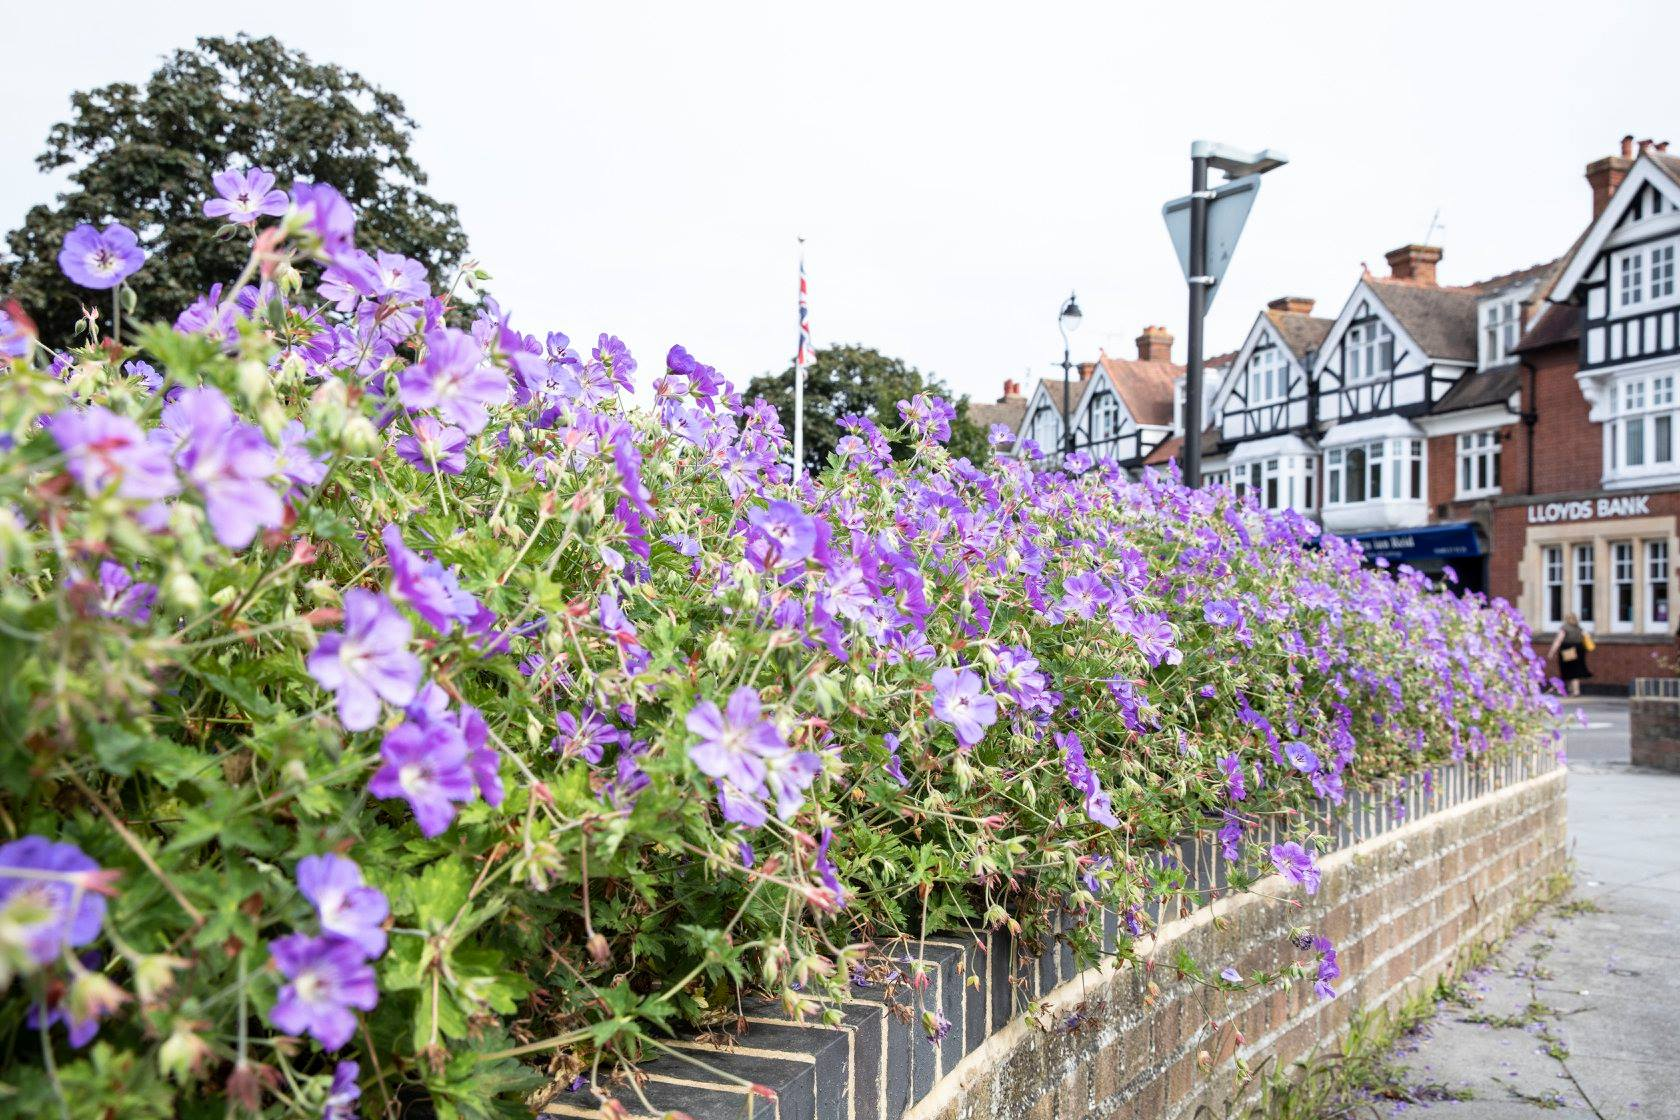 What has Cranleigh in Bloom done this year?